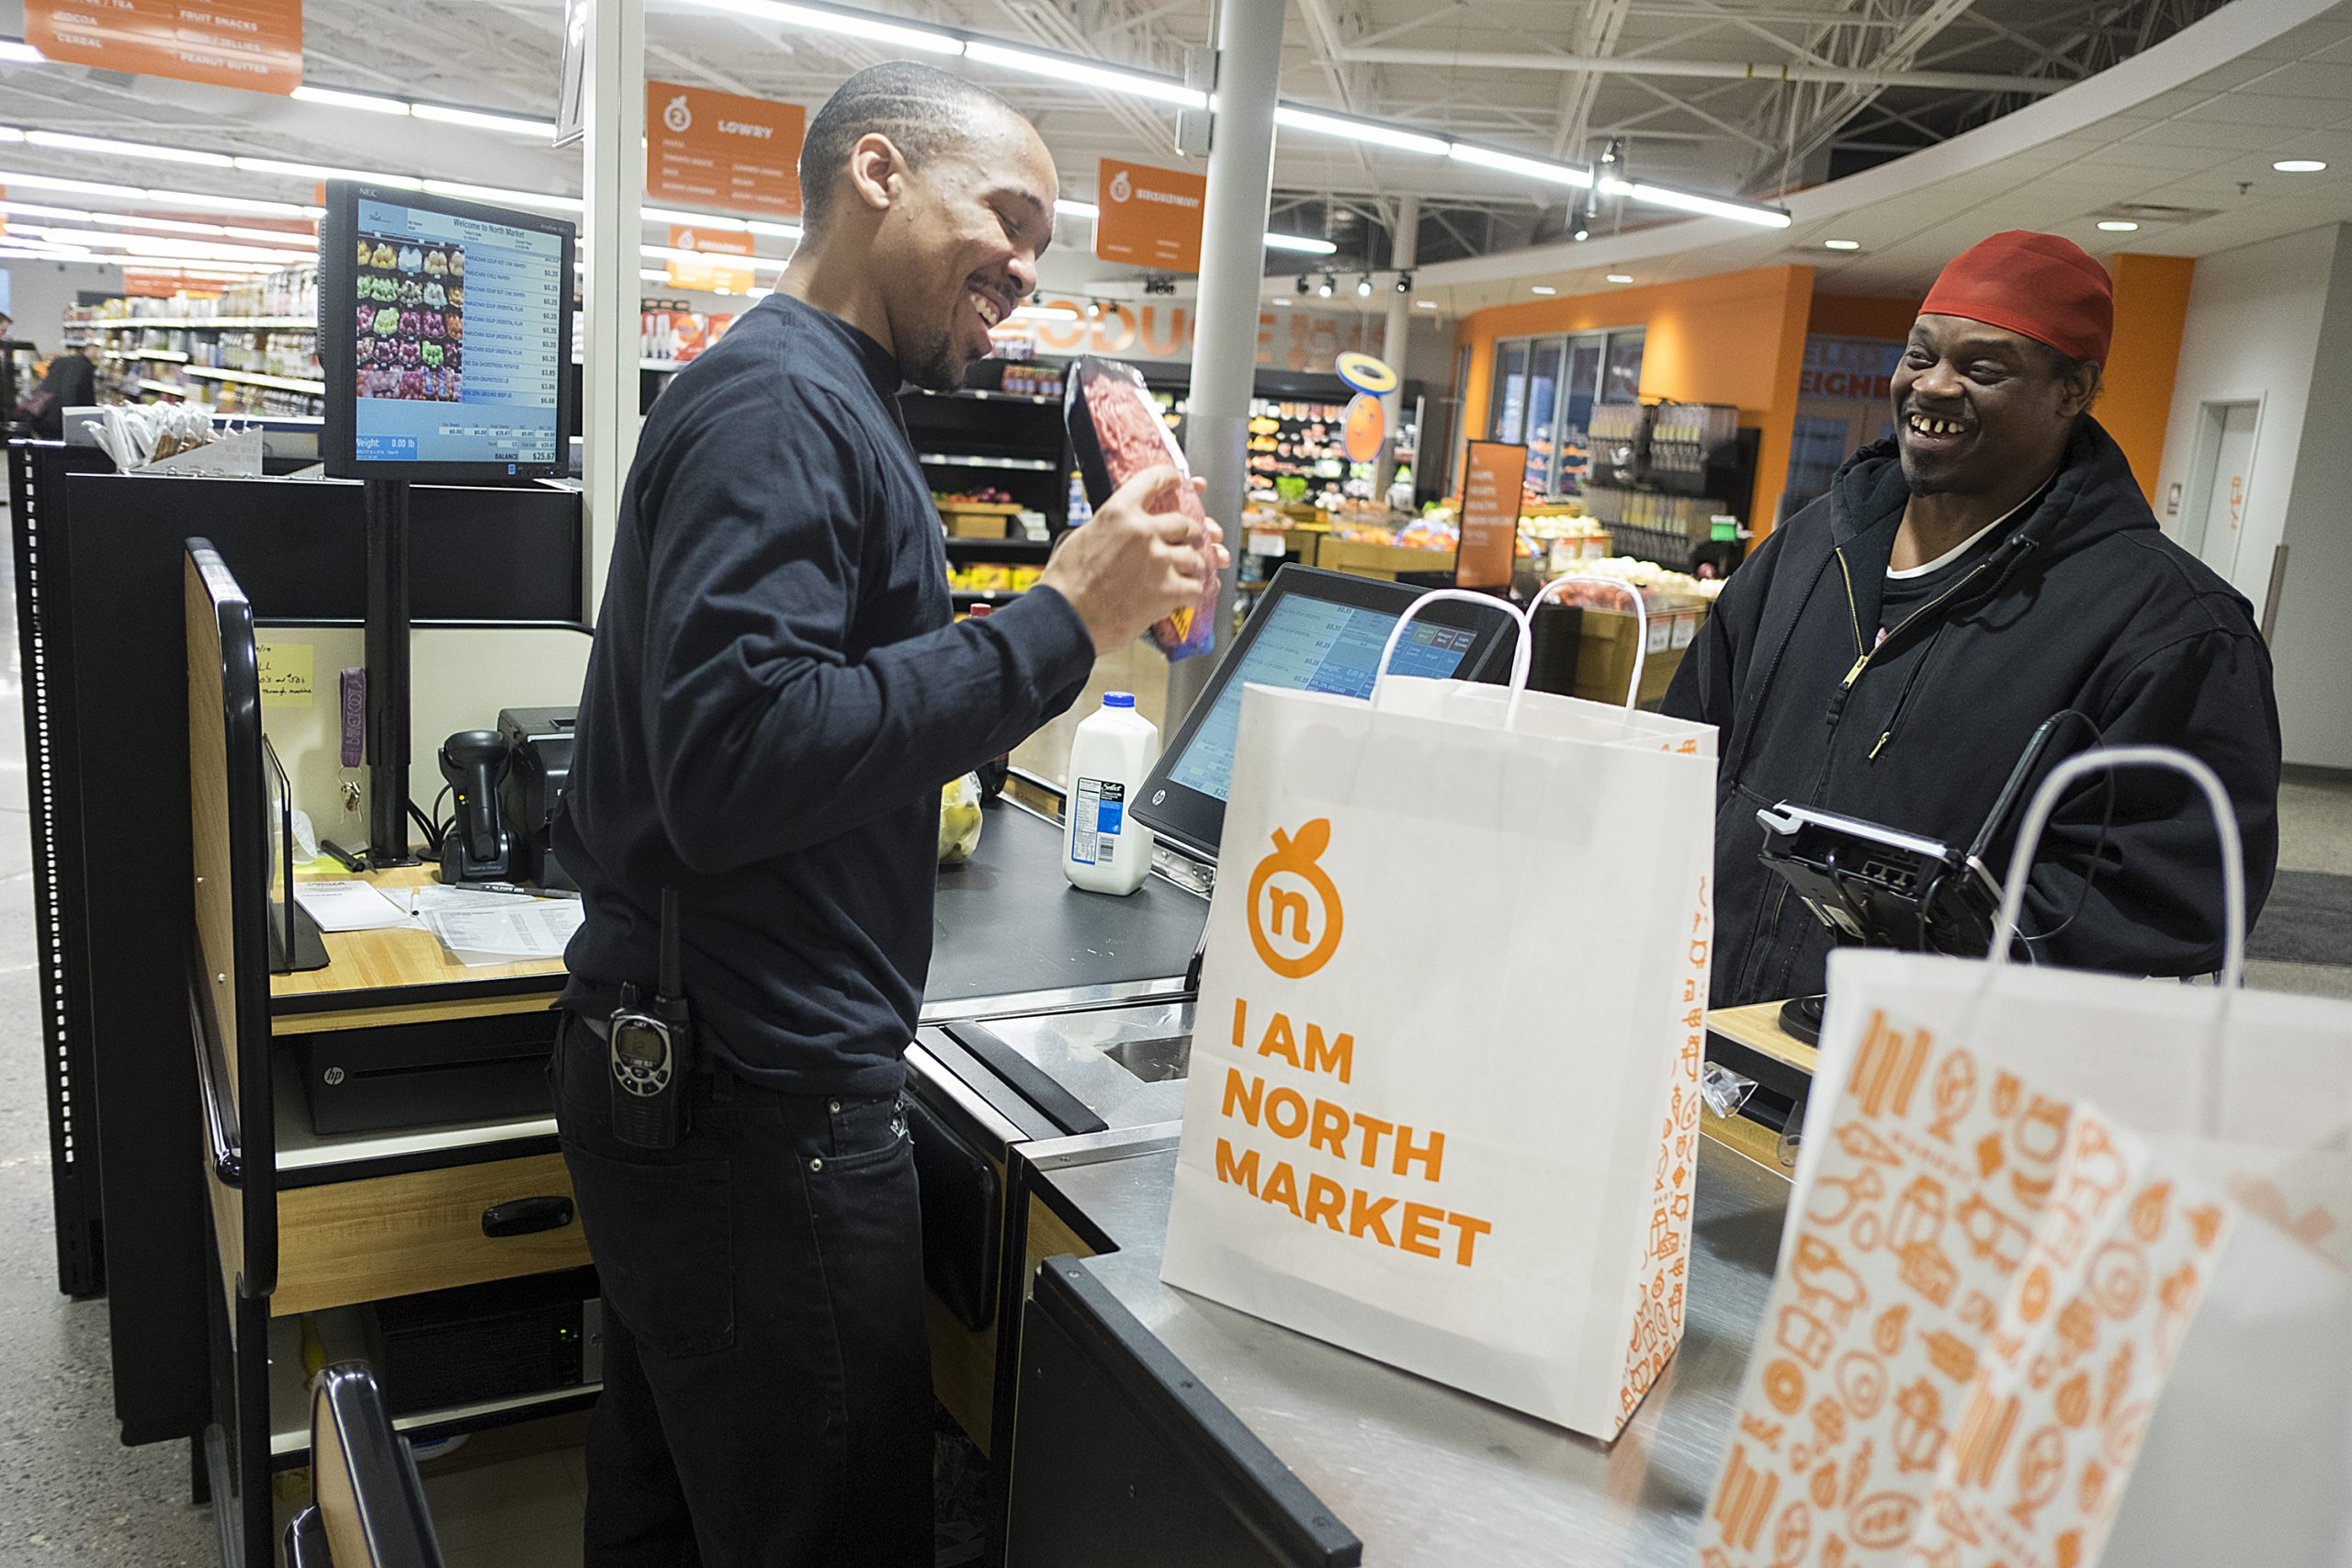 Cashier and customer in check-out line at North Market